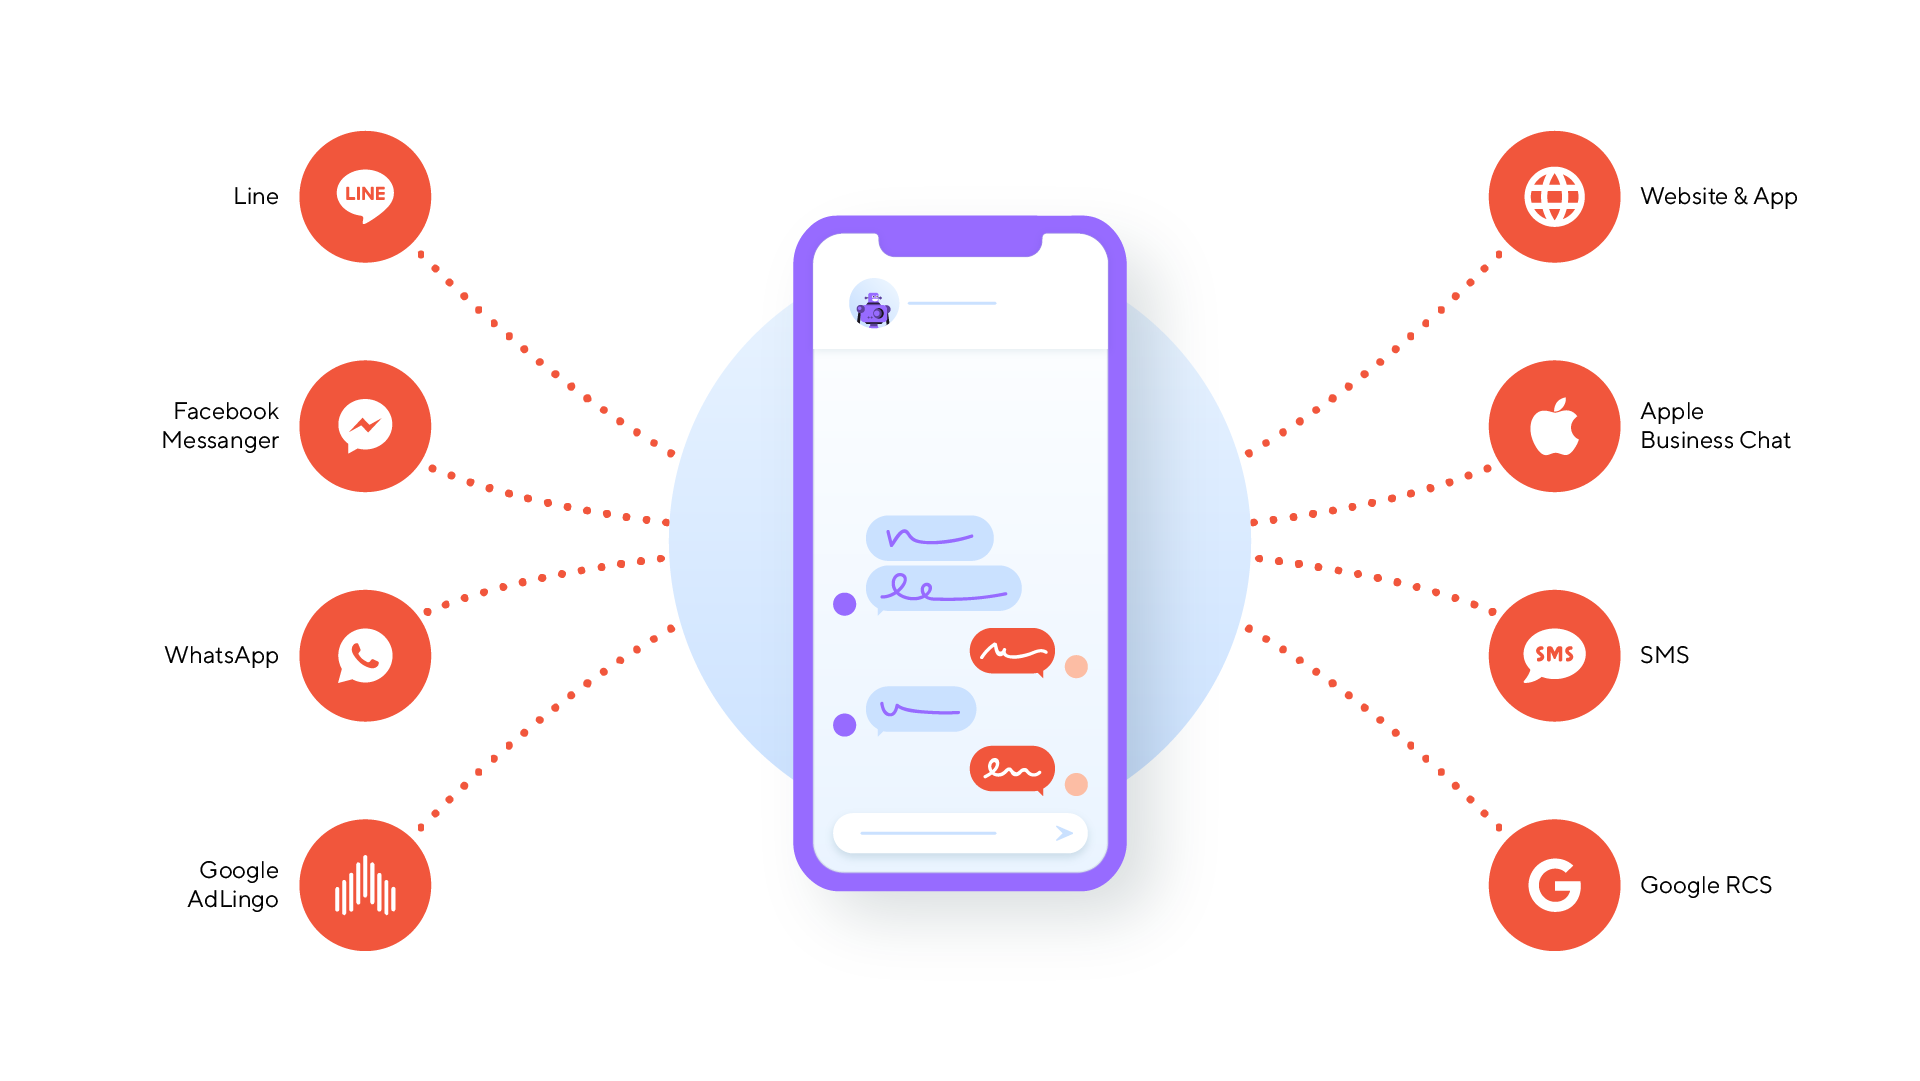 Adlingo rise of the chatbots in customer experience - masters blog